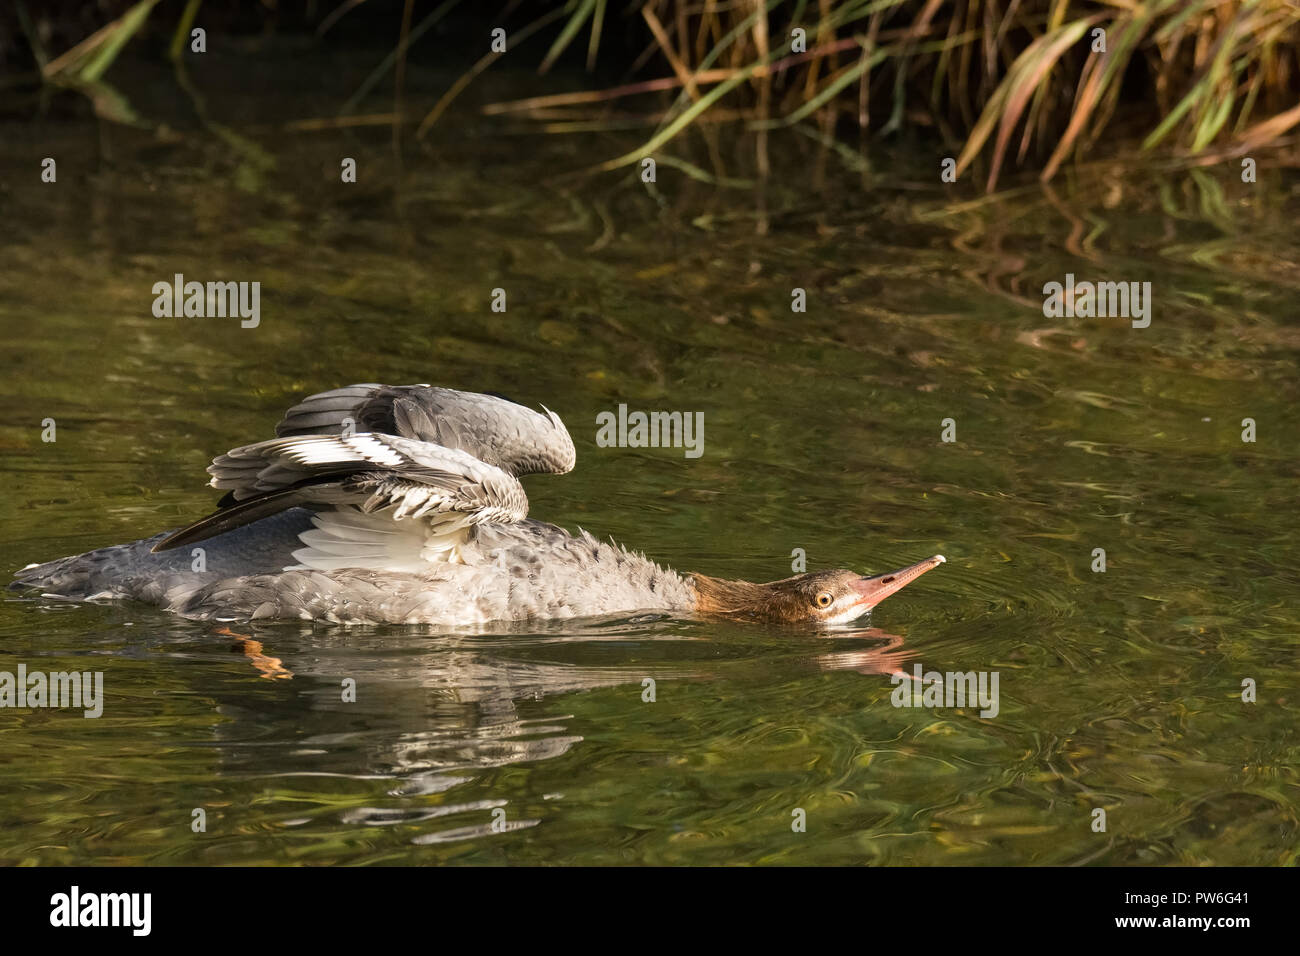 Female merganser stretches out her neck across smooth reflecting water - Stock Image